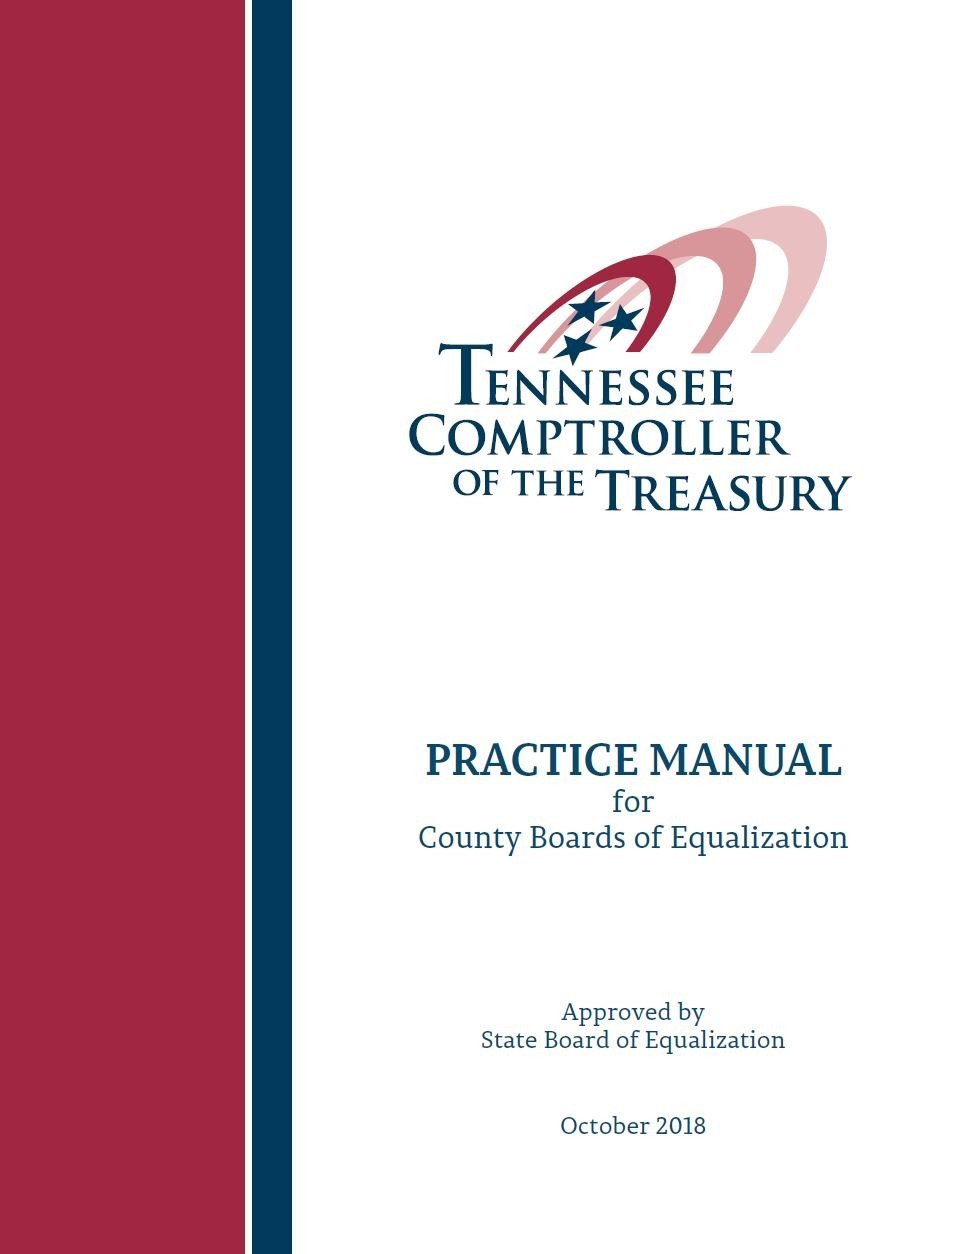 County Board of Equalization Practice Manual